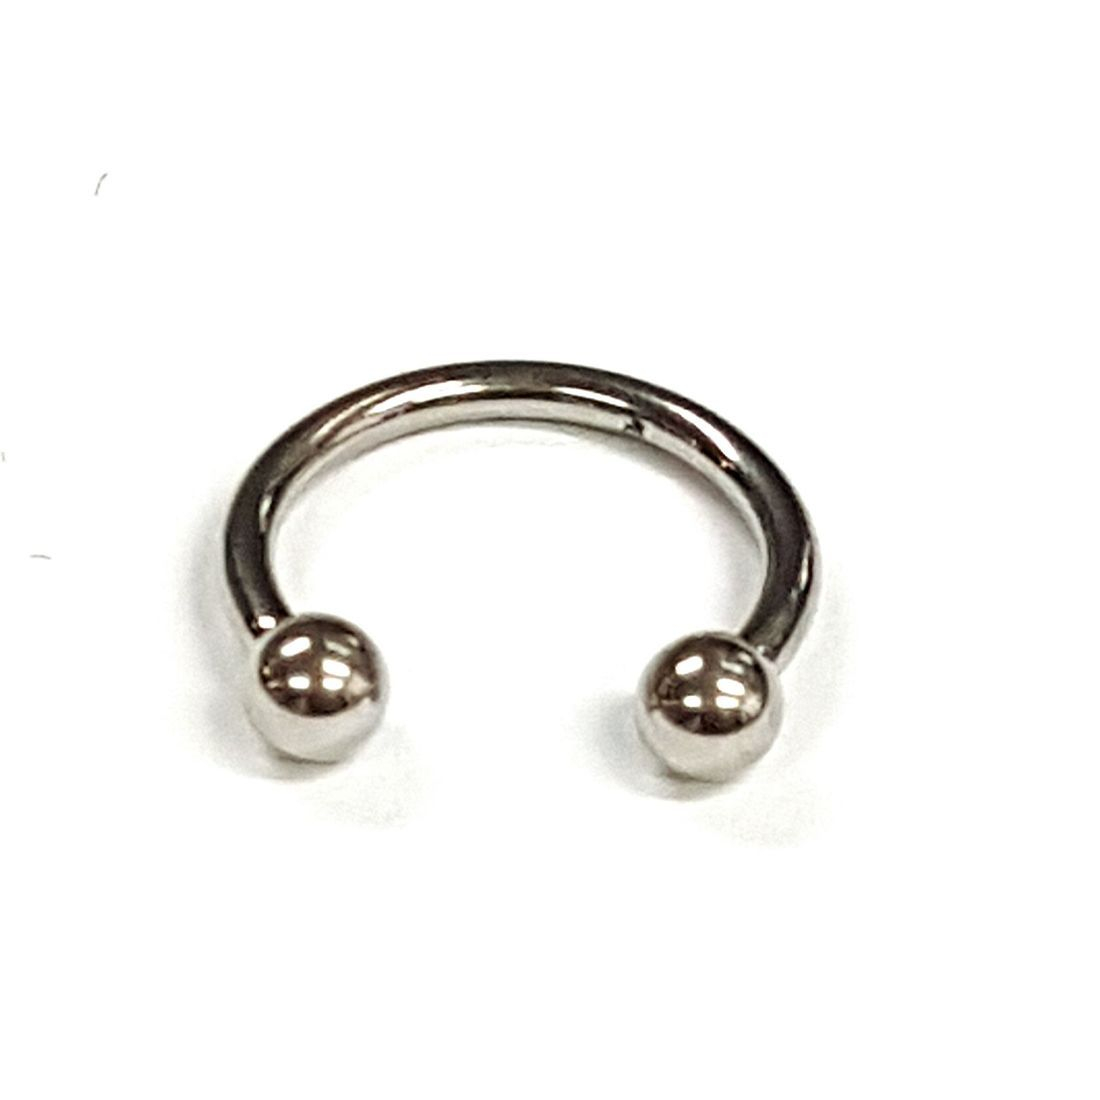 1.2mm x 8mm Silver Horseshoe 3mm balls   available at Kazbah online and our Leicester City Centre Shop